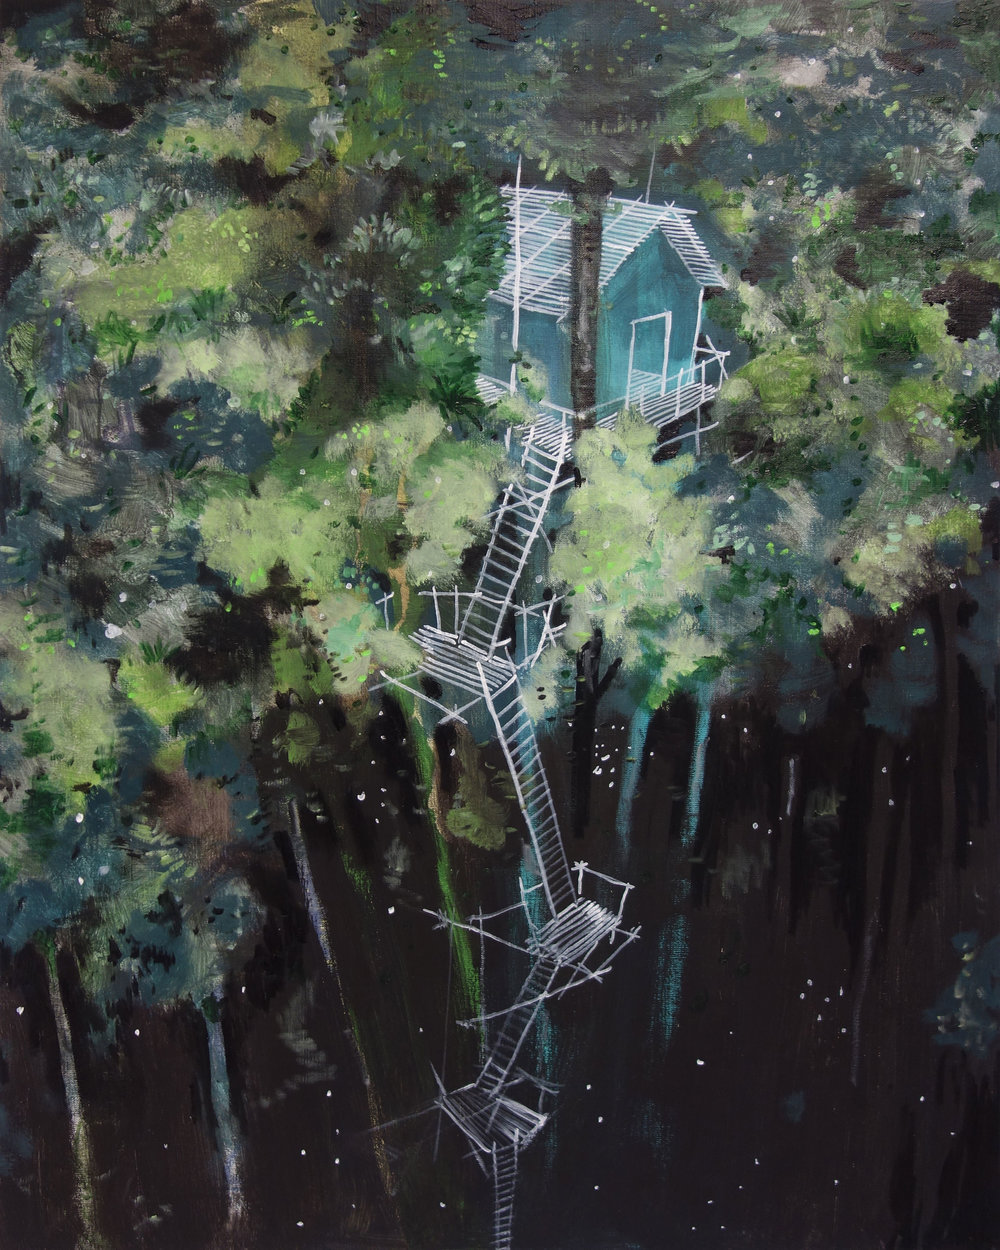 Up in the trees (in private collection)